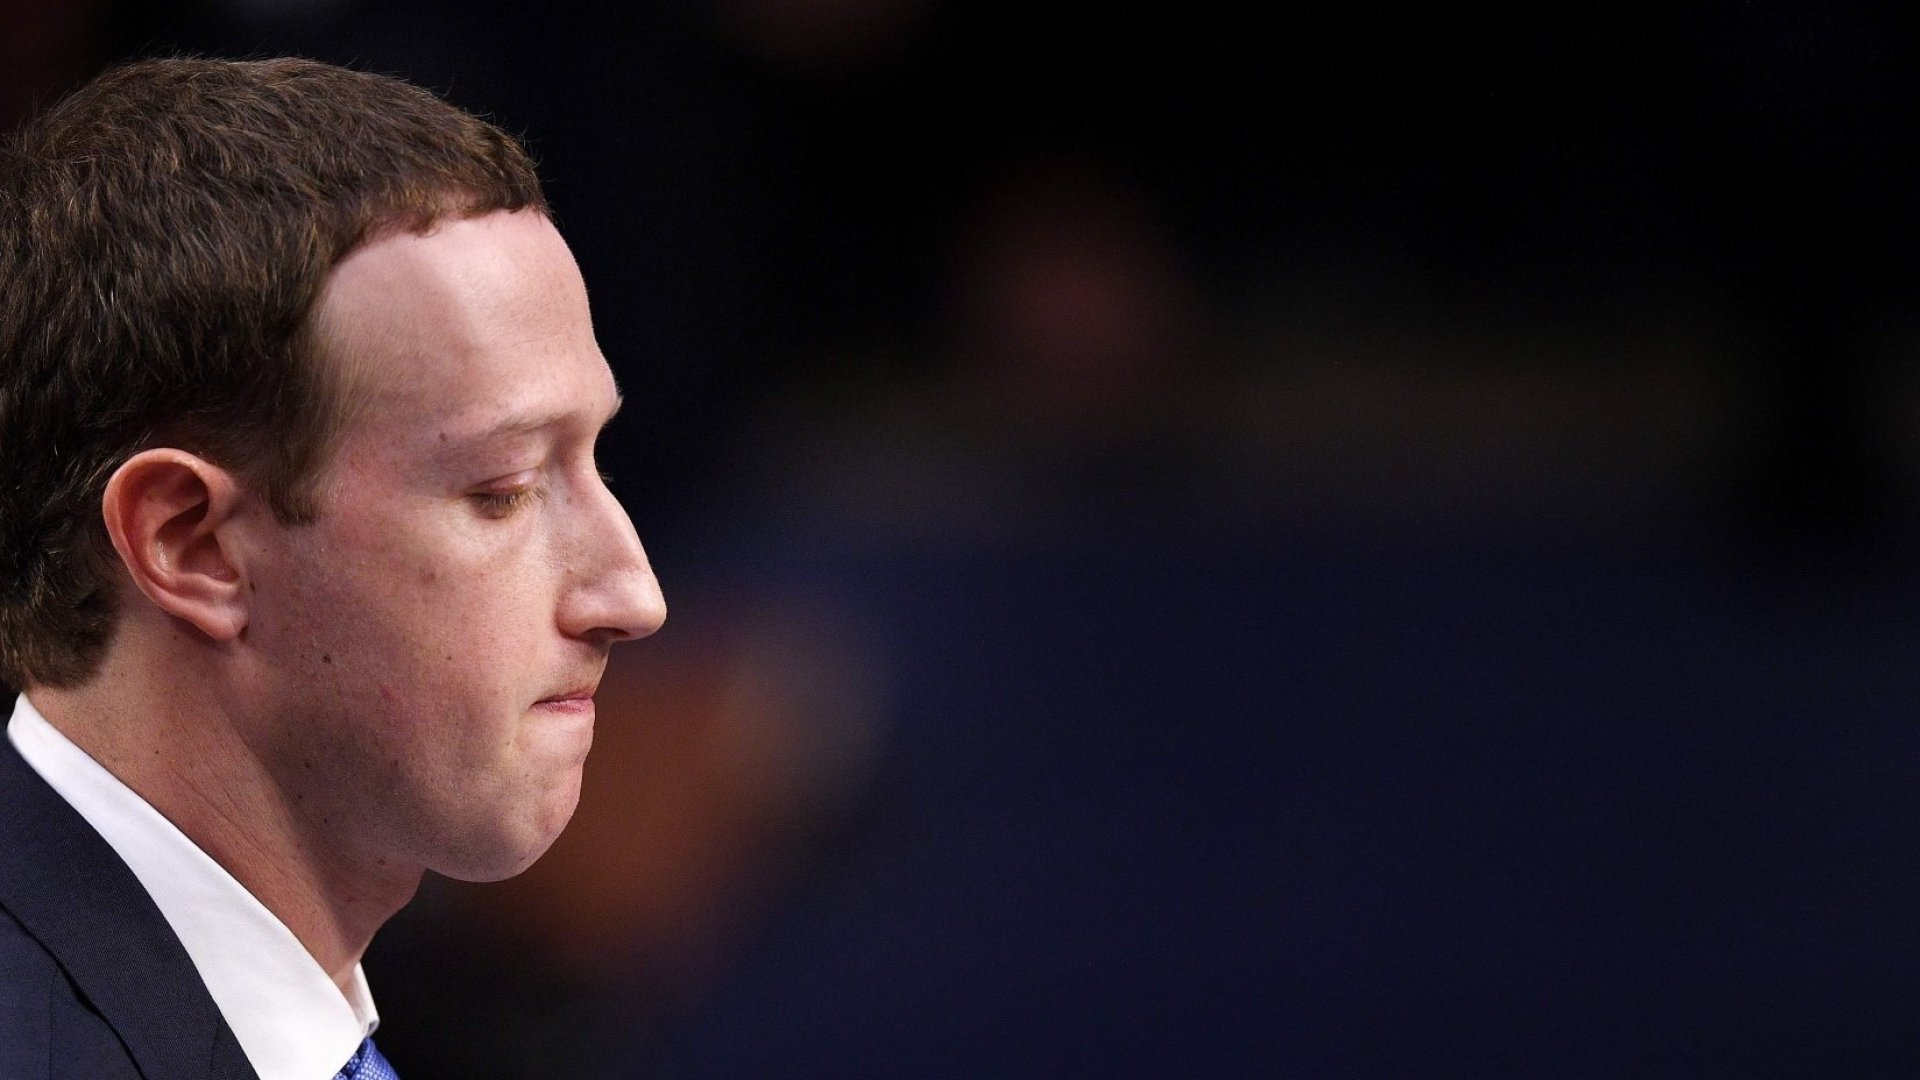 Facebook CEO Mark Zuckerberg testifies before a joint hearing of the US Senate Commerce, Science and Transportation Committee and Senate Judiciary Committee on Capitol Hill, April 10, 2018 in Washington, DC. Zuckerberg offered apologies to US lawmakers Tuesday as he made a long-awaited appearance in a congressional hearing on the hijacking of personal data on millions of users.